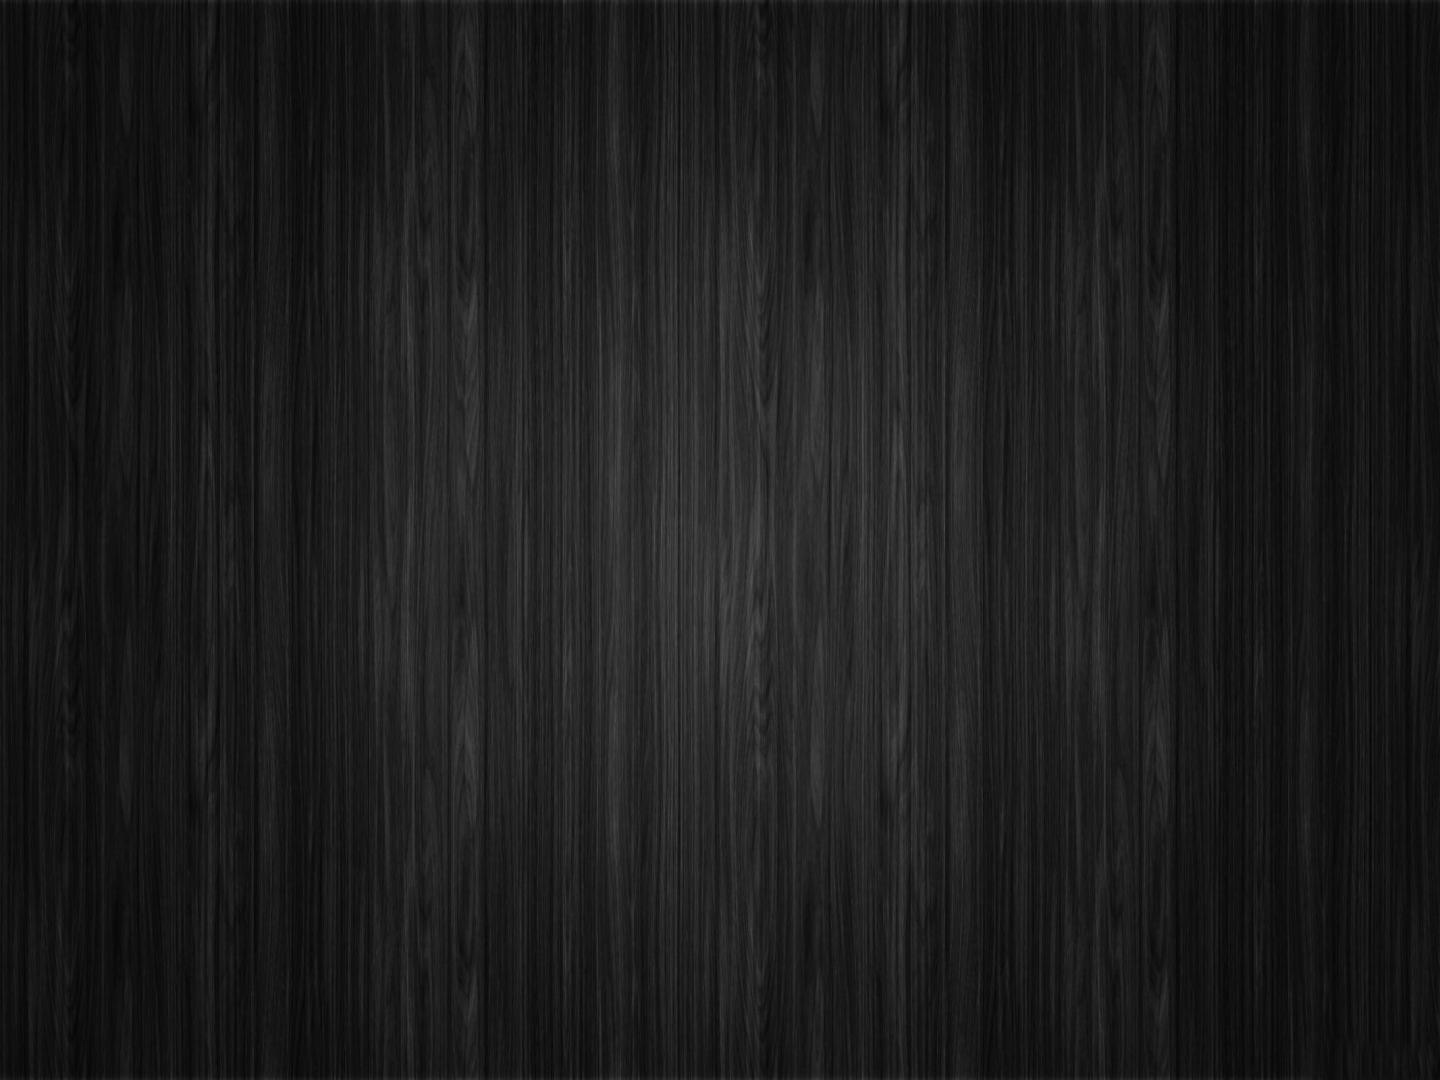 Black Abstract Backgrounds Hd Widescreen 11 HD Wallpapers